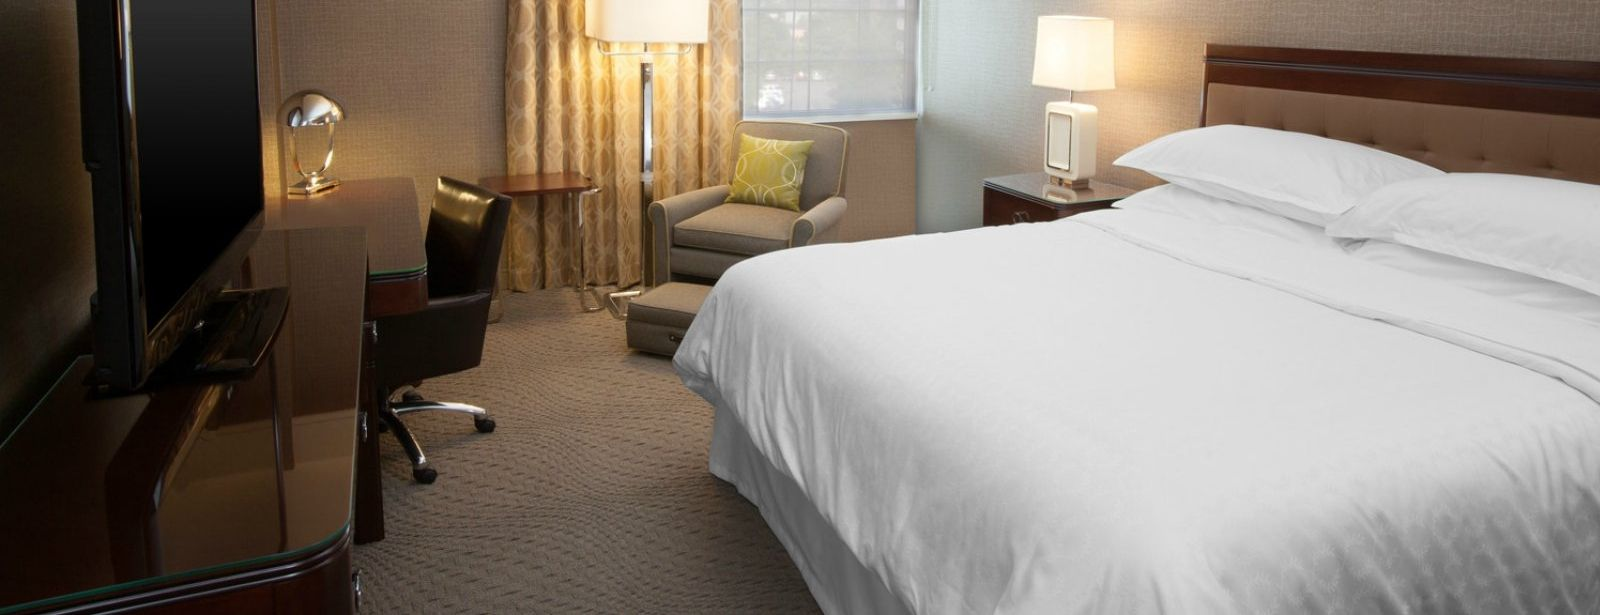 Pittsburgh Accommodations - Traditional King Guest Room